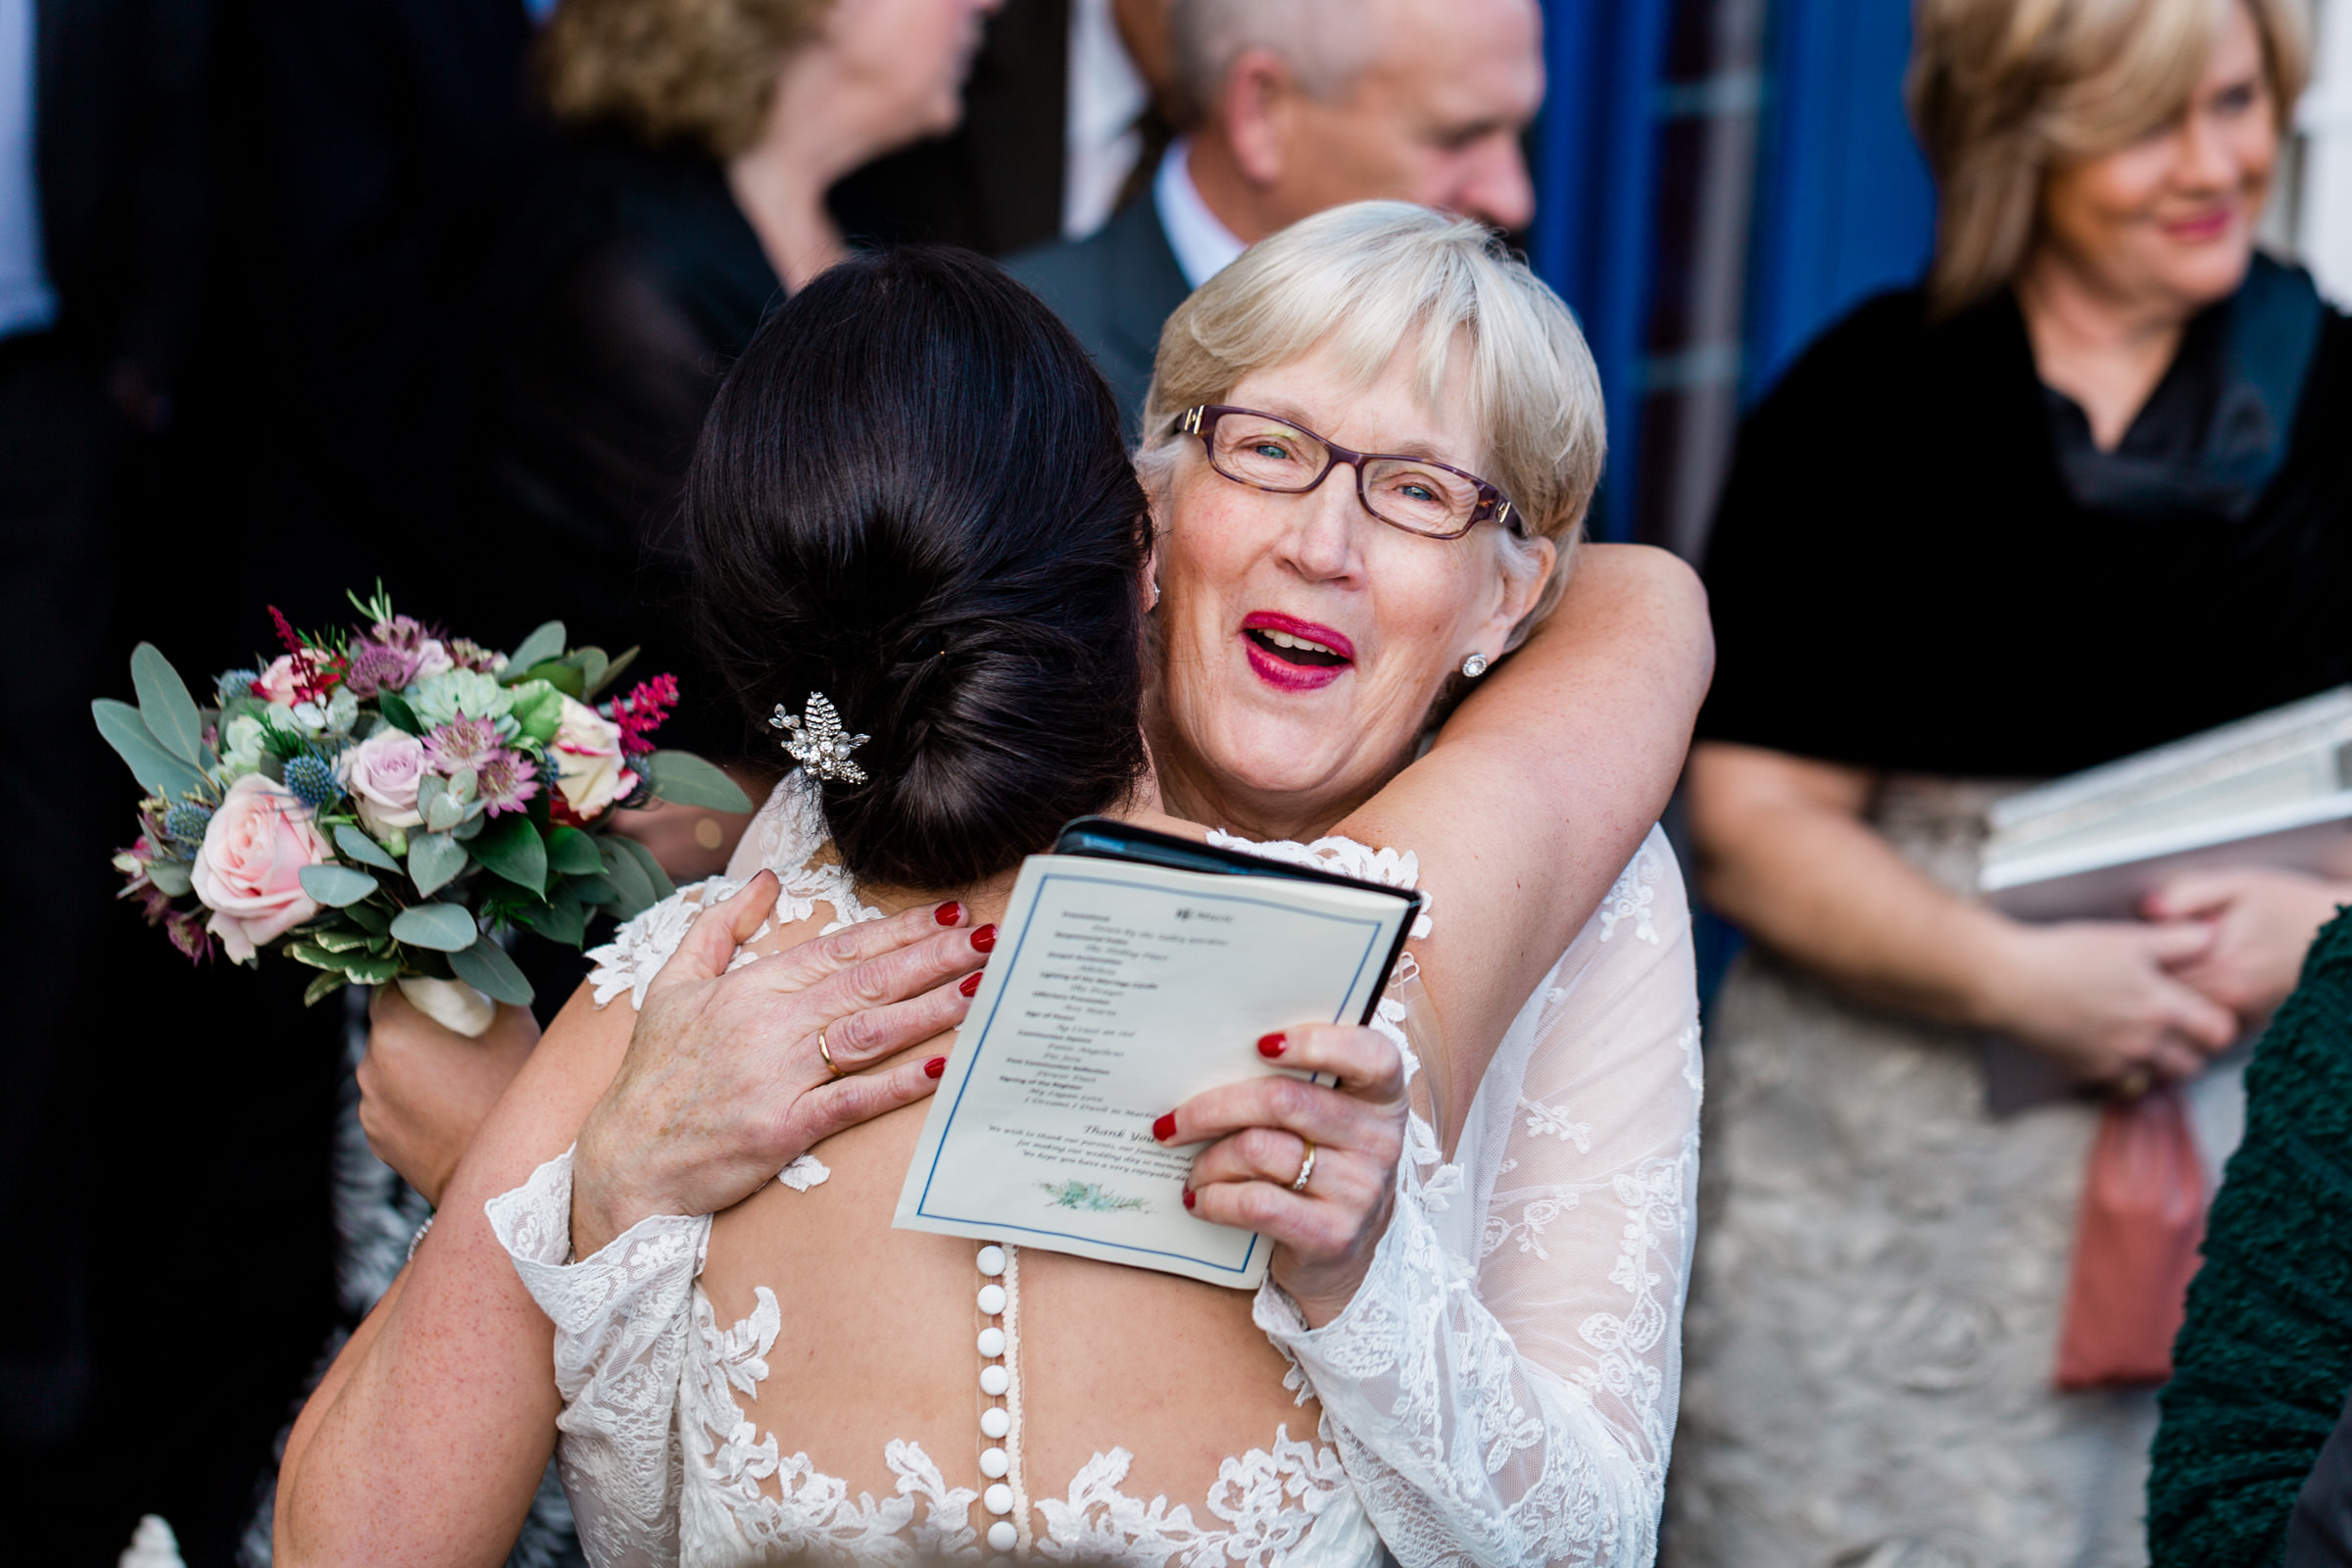 Bride mother embrace - photo by The Portrait Rooms